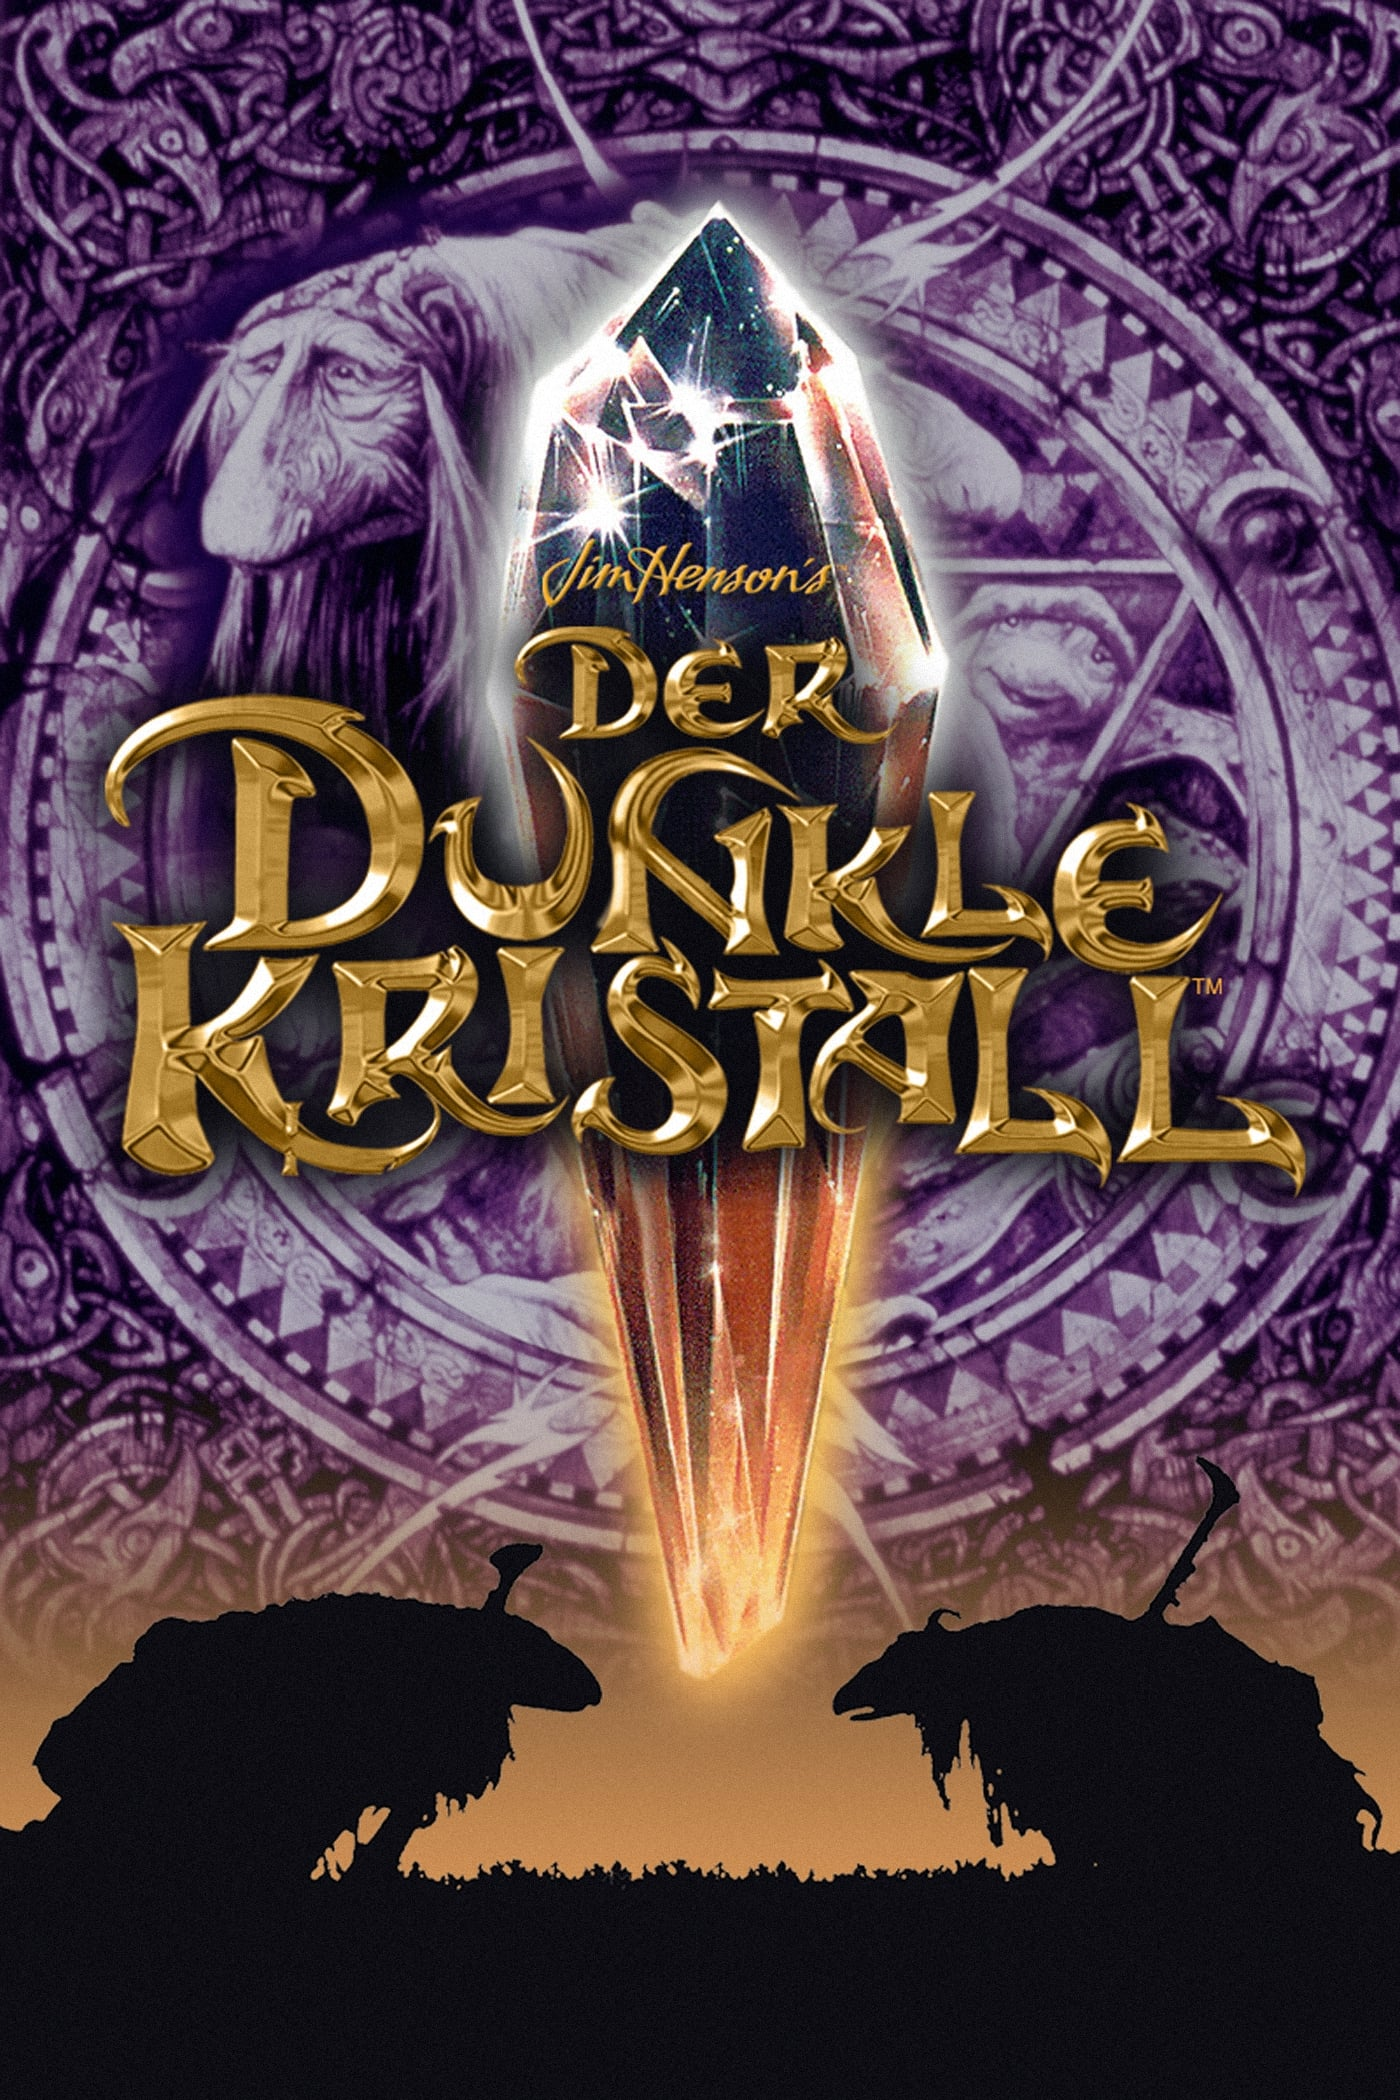 Dunkle Kristall